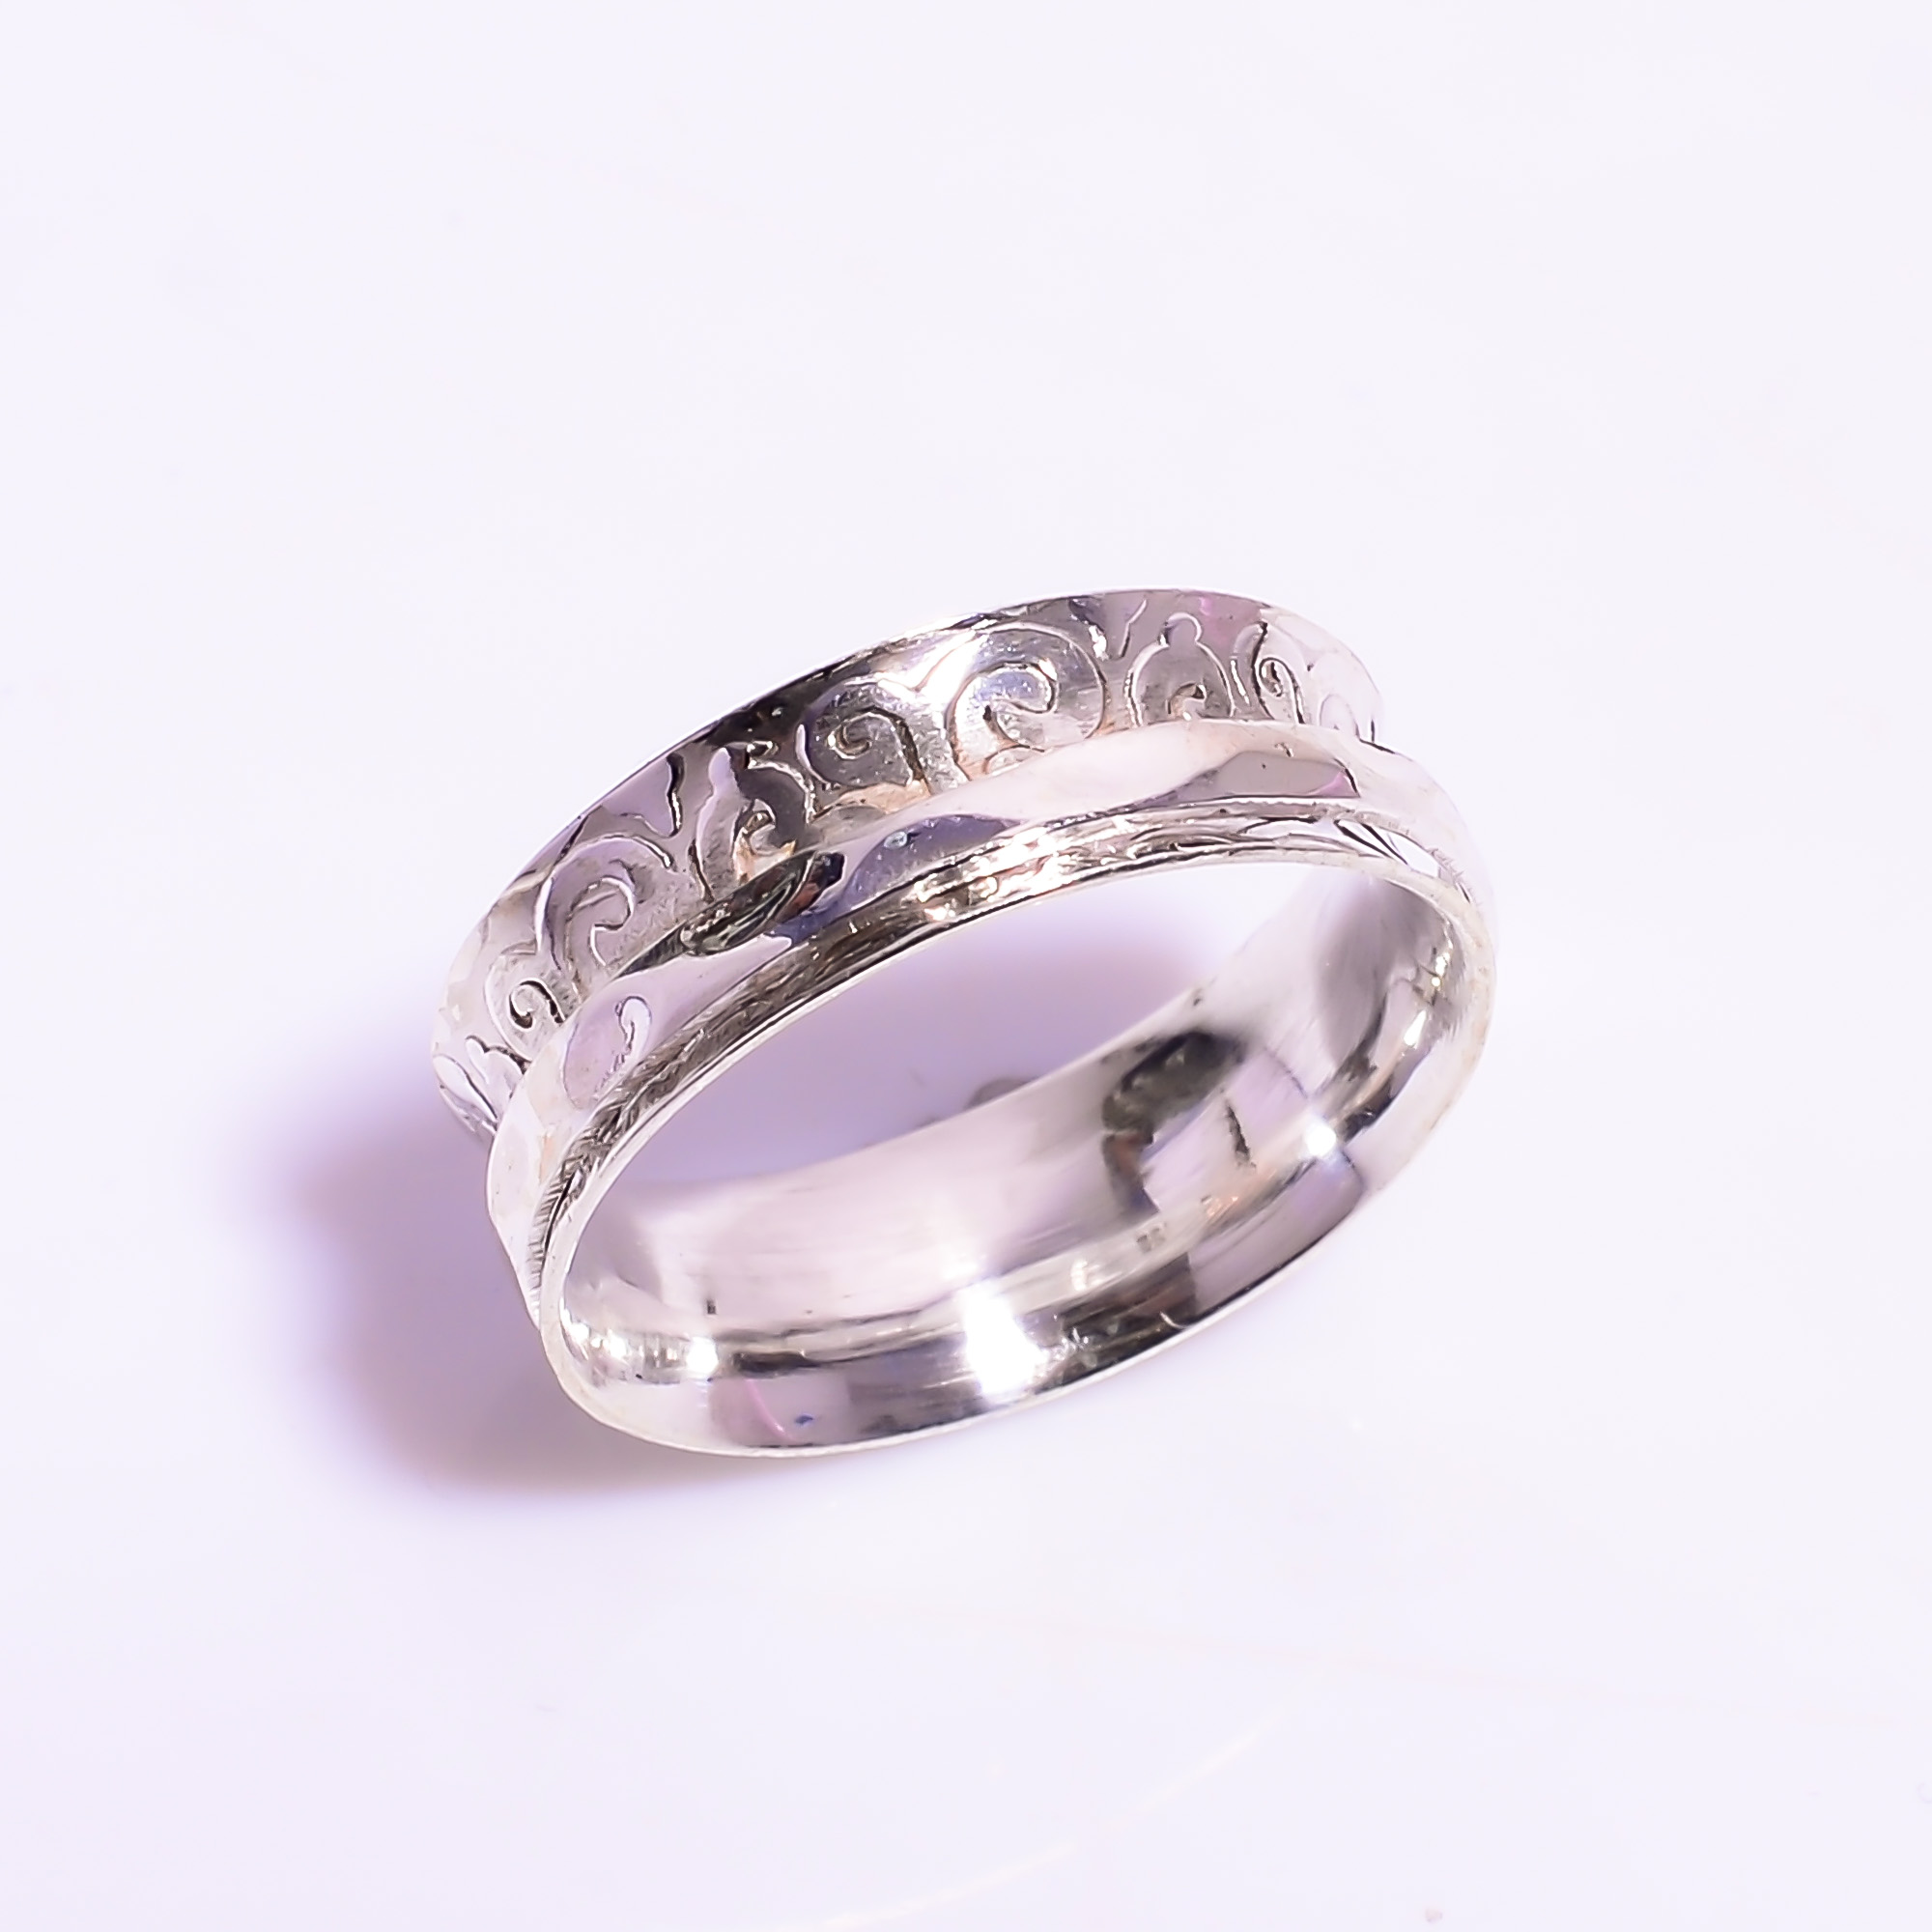 925 Sterling Silver Meditation Spinner Ring Size US 6.75